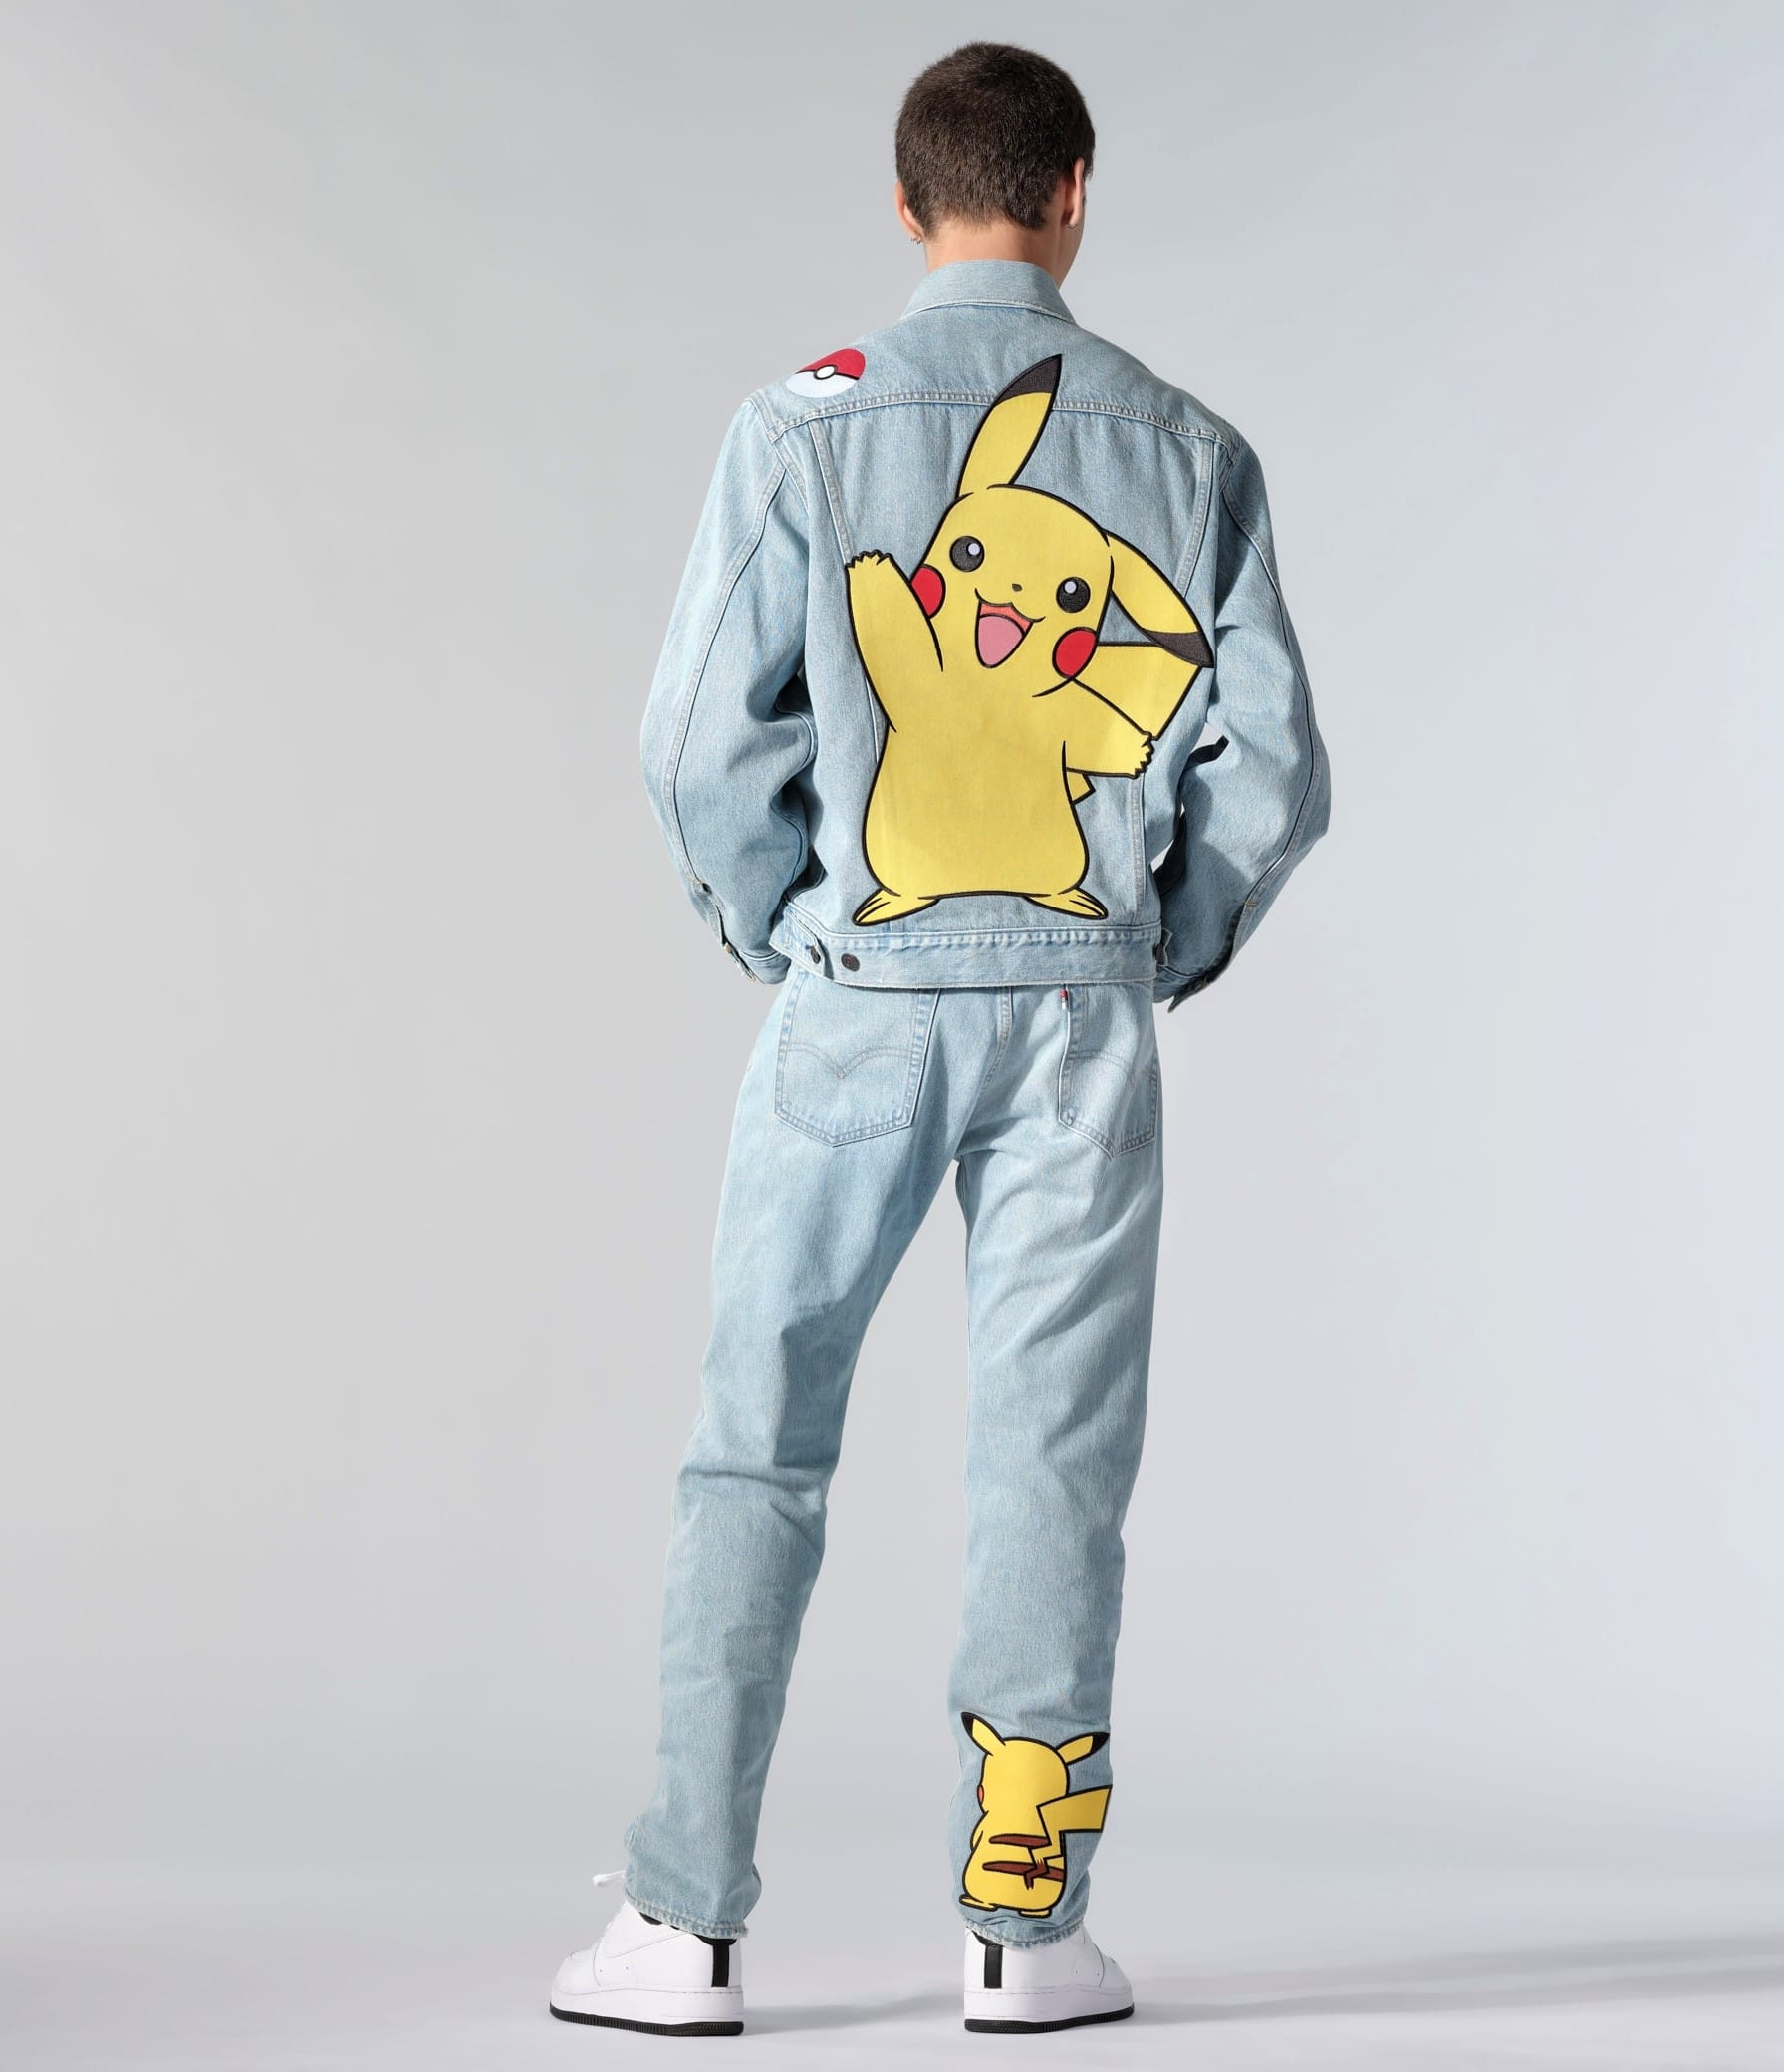 Levi's celebrates Pokémon's 25th anniversary with a '90s-style collection 11